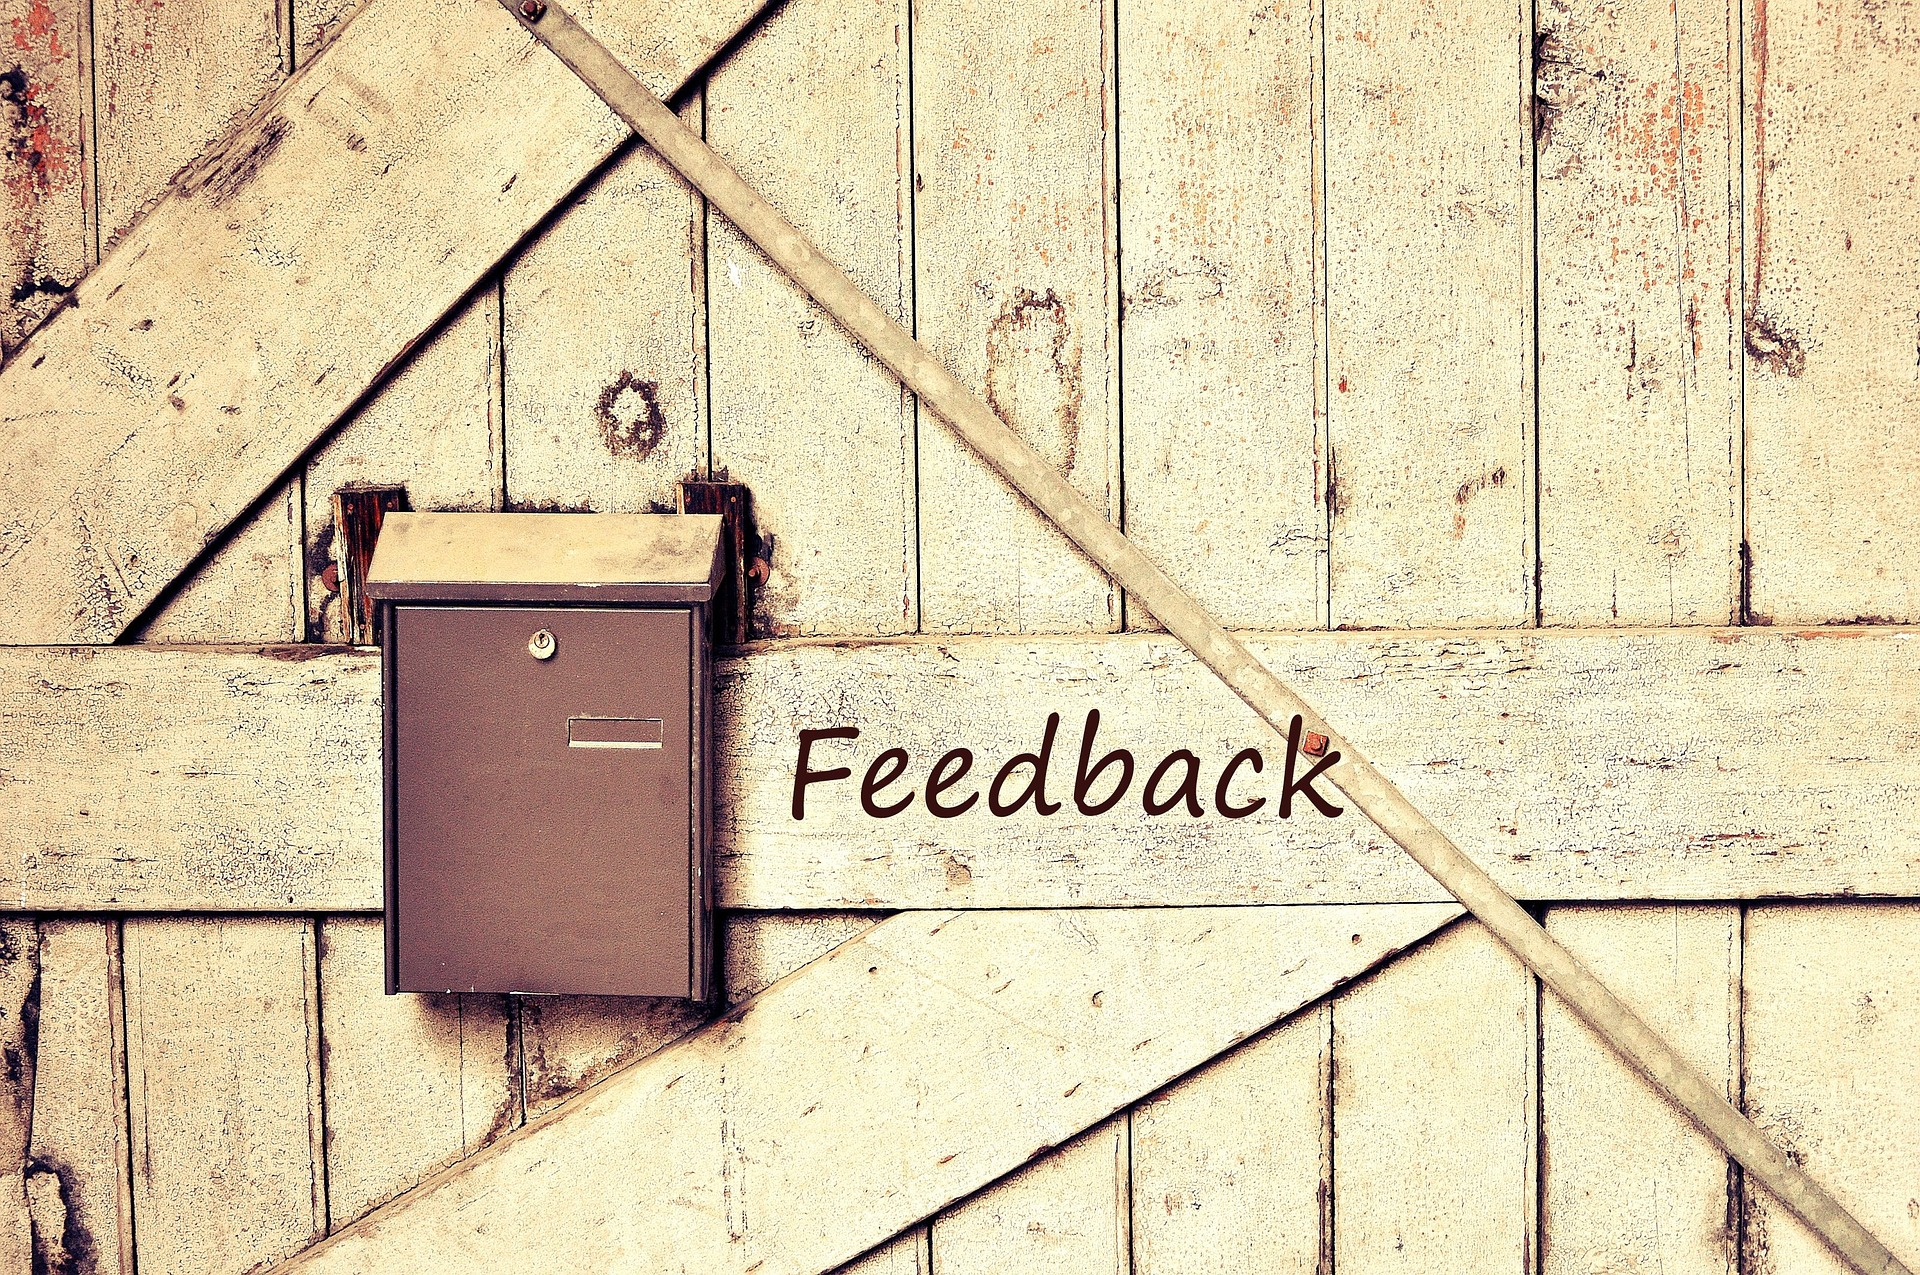 Ask for informal feedback